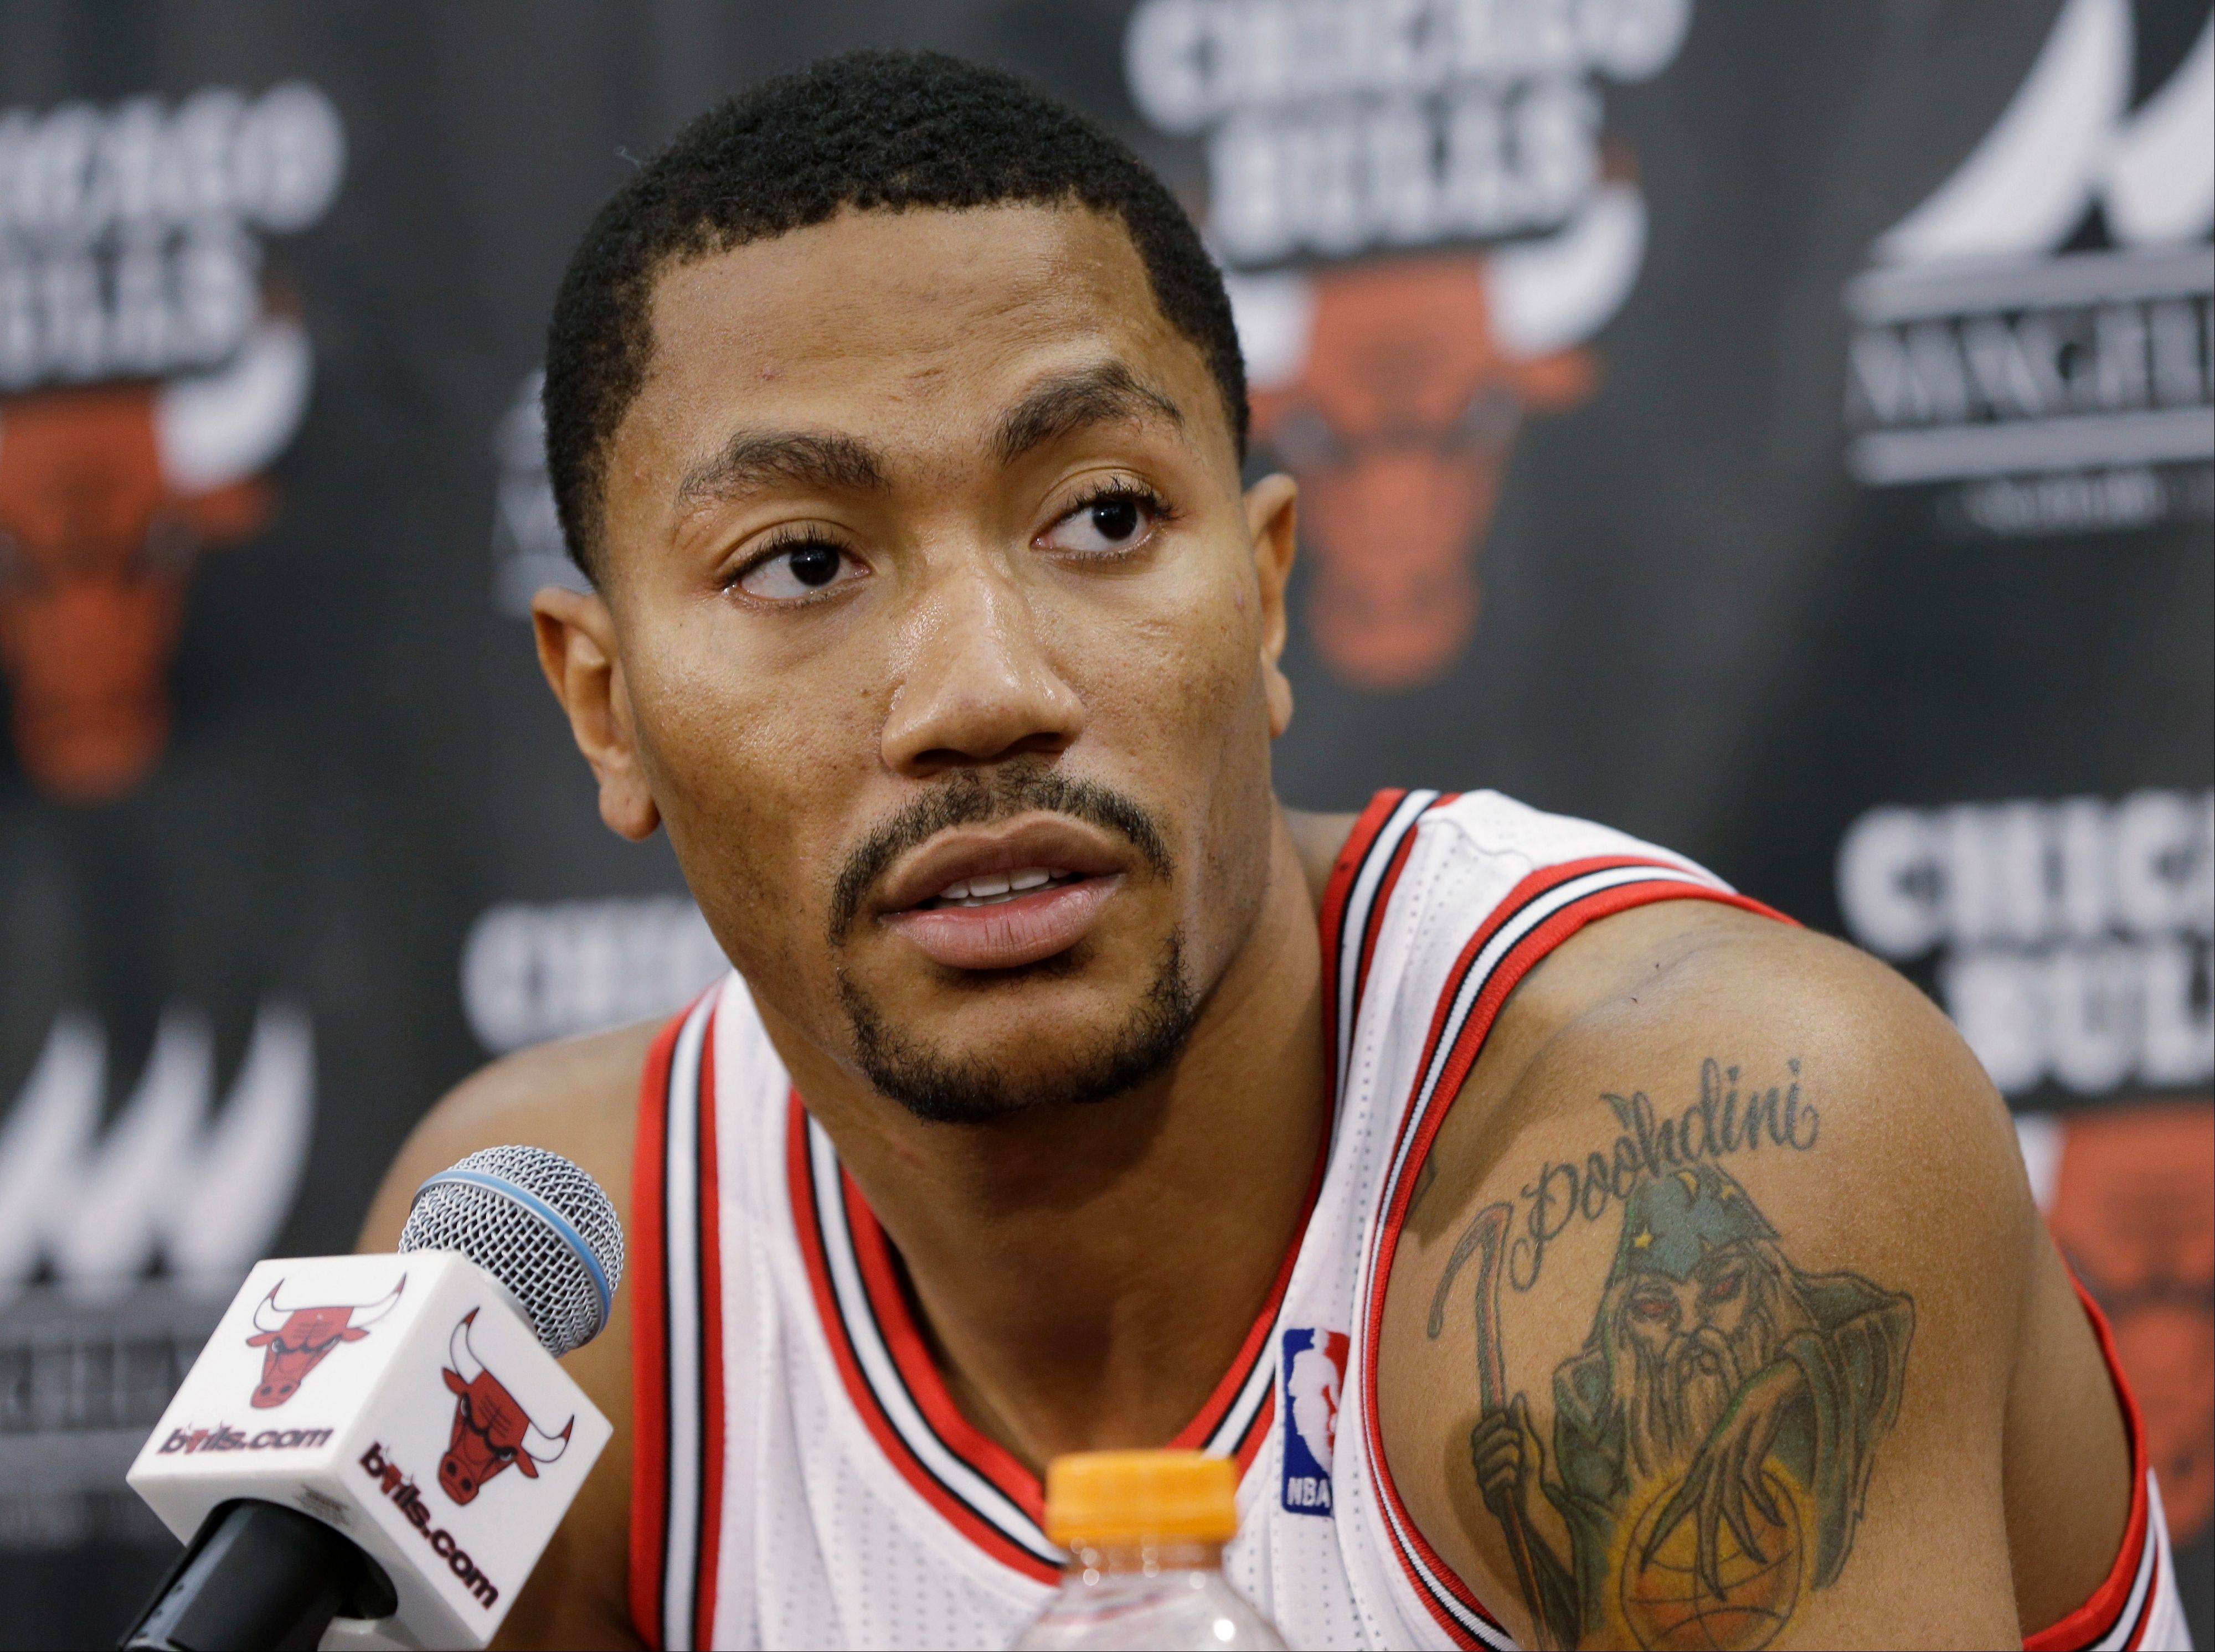 Derrick Rose said the Bulls' first training camp practice was hard but nothing he hasn't gone through before.